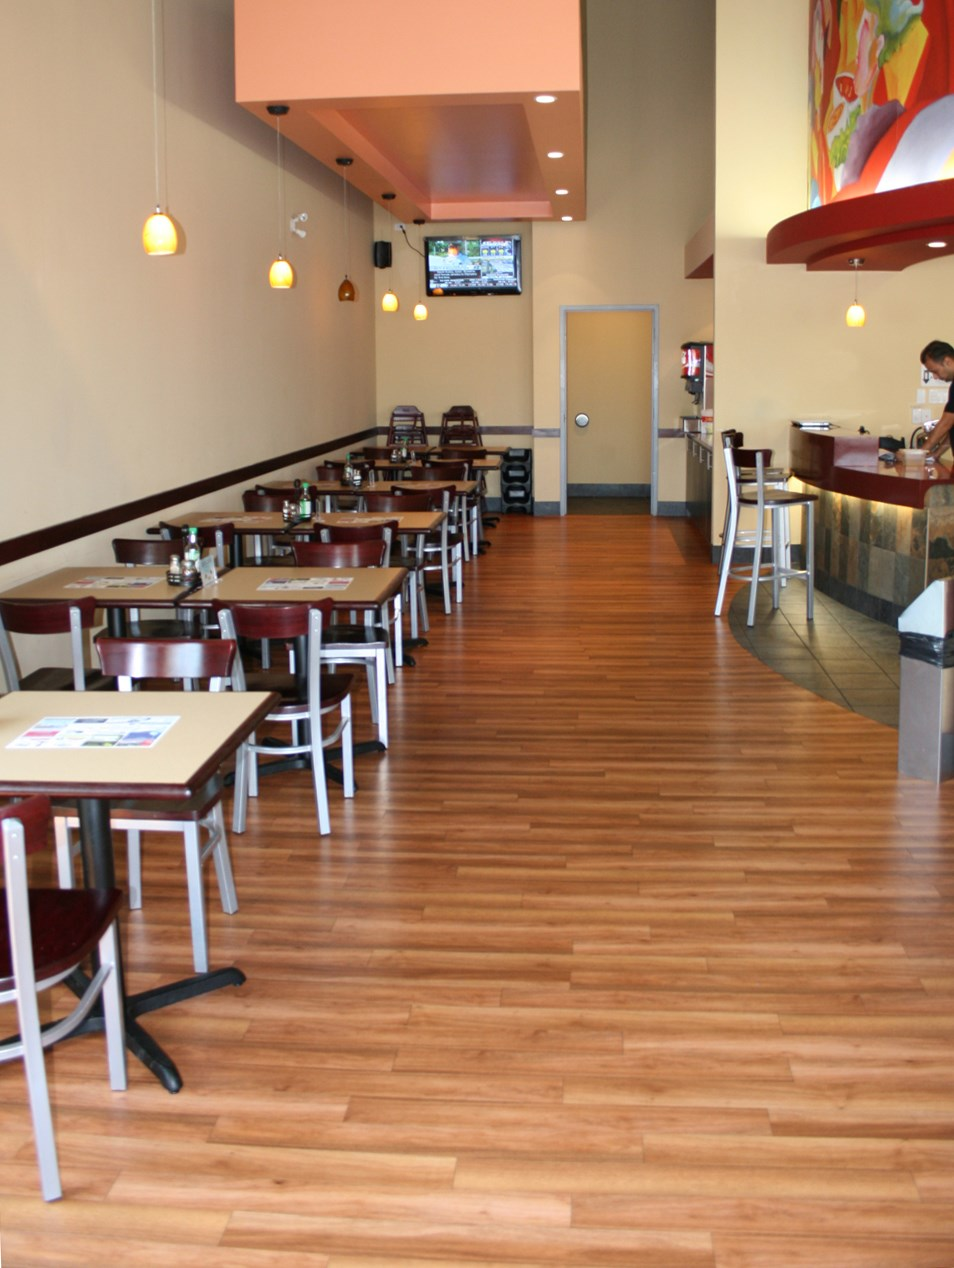 Vinyl Flooring for Restaurants Beautiful and Practical vinyl flooring for restaurants